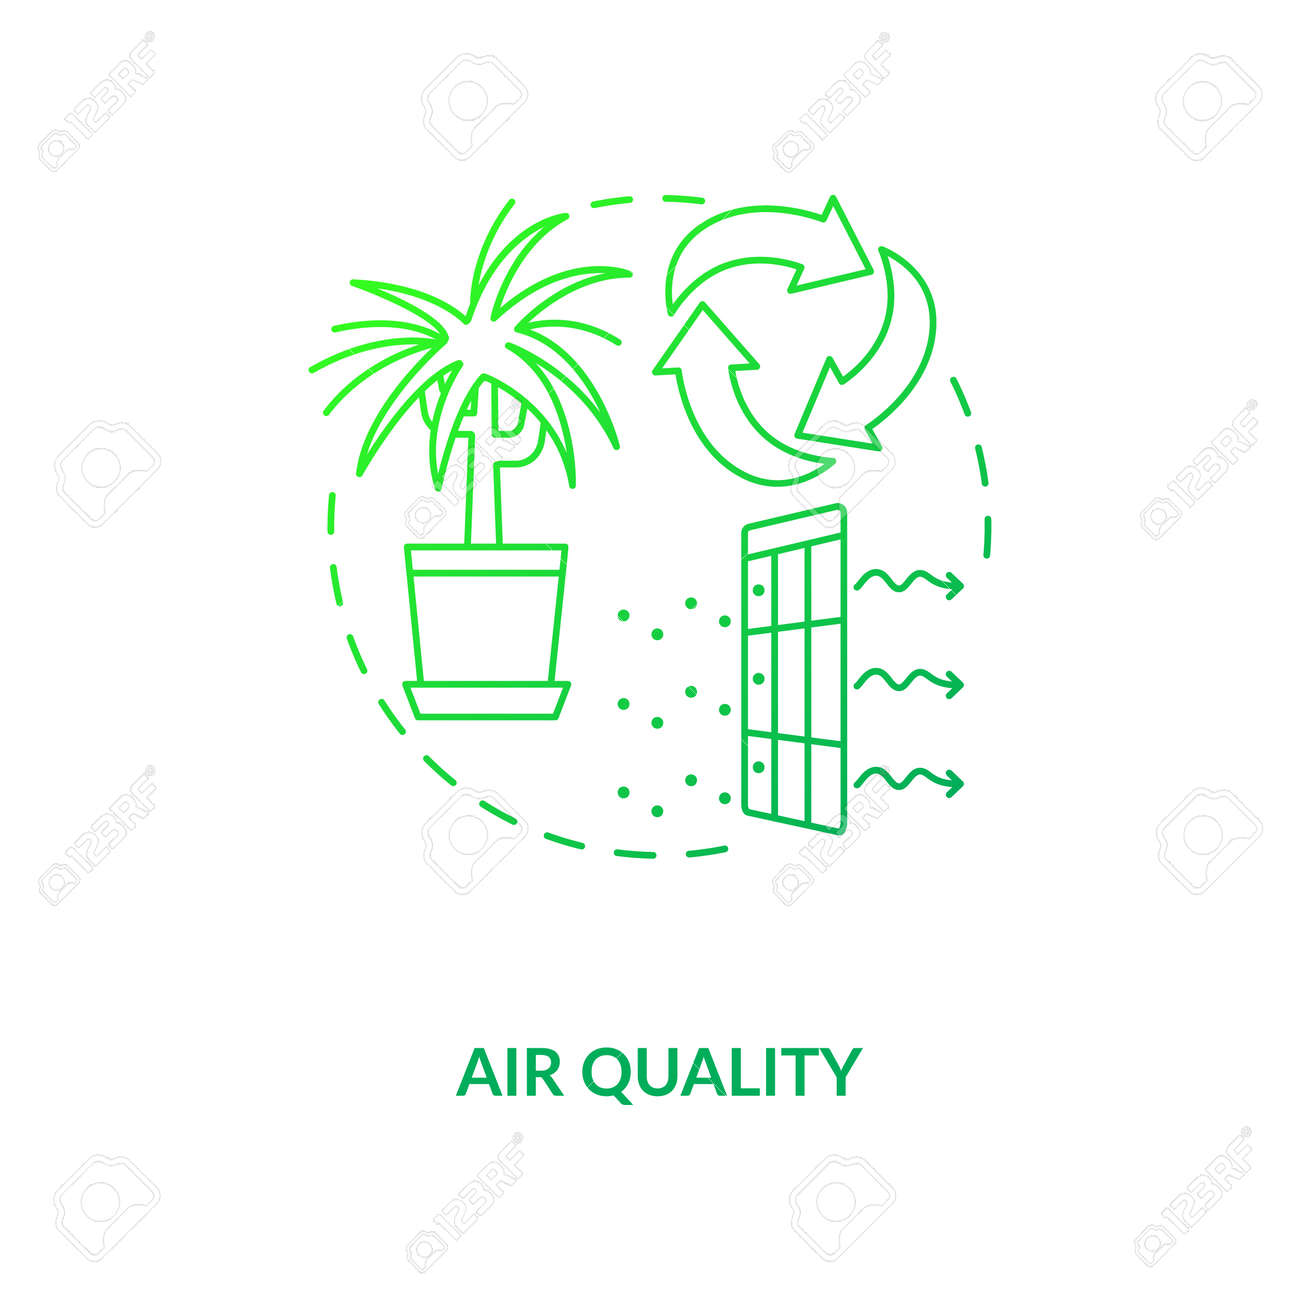 Air quality green concept icon. Indoor ventilation. Clean house. Environmental care. Air circulation. Biophilia idea thin line illustration. Vector isolated outline RGB color drawing - 159287643